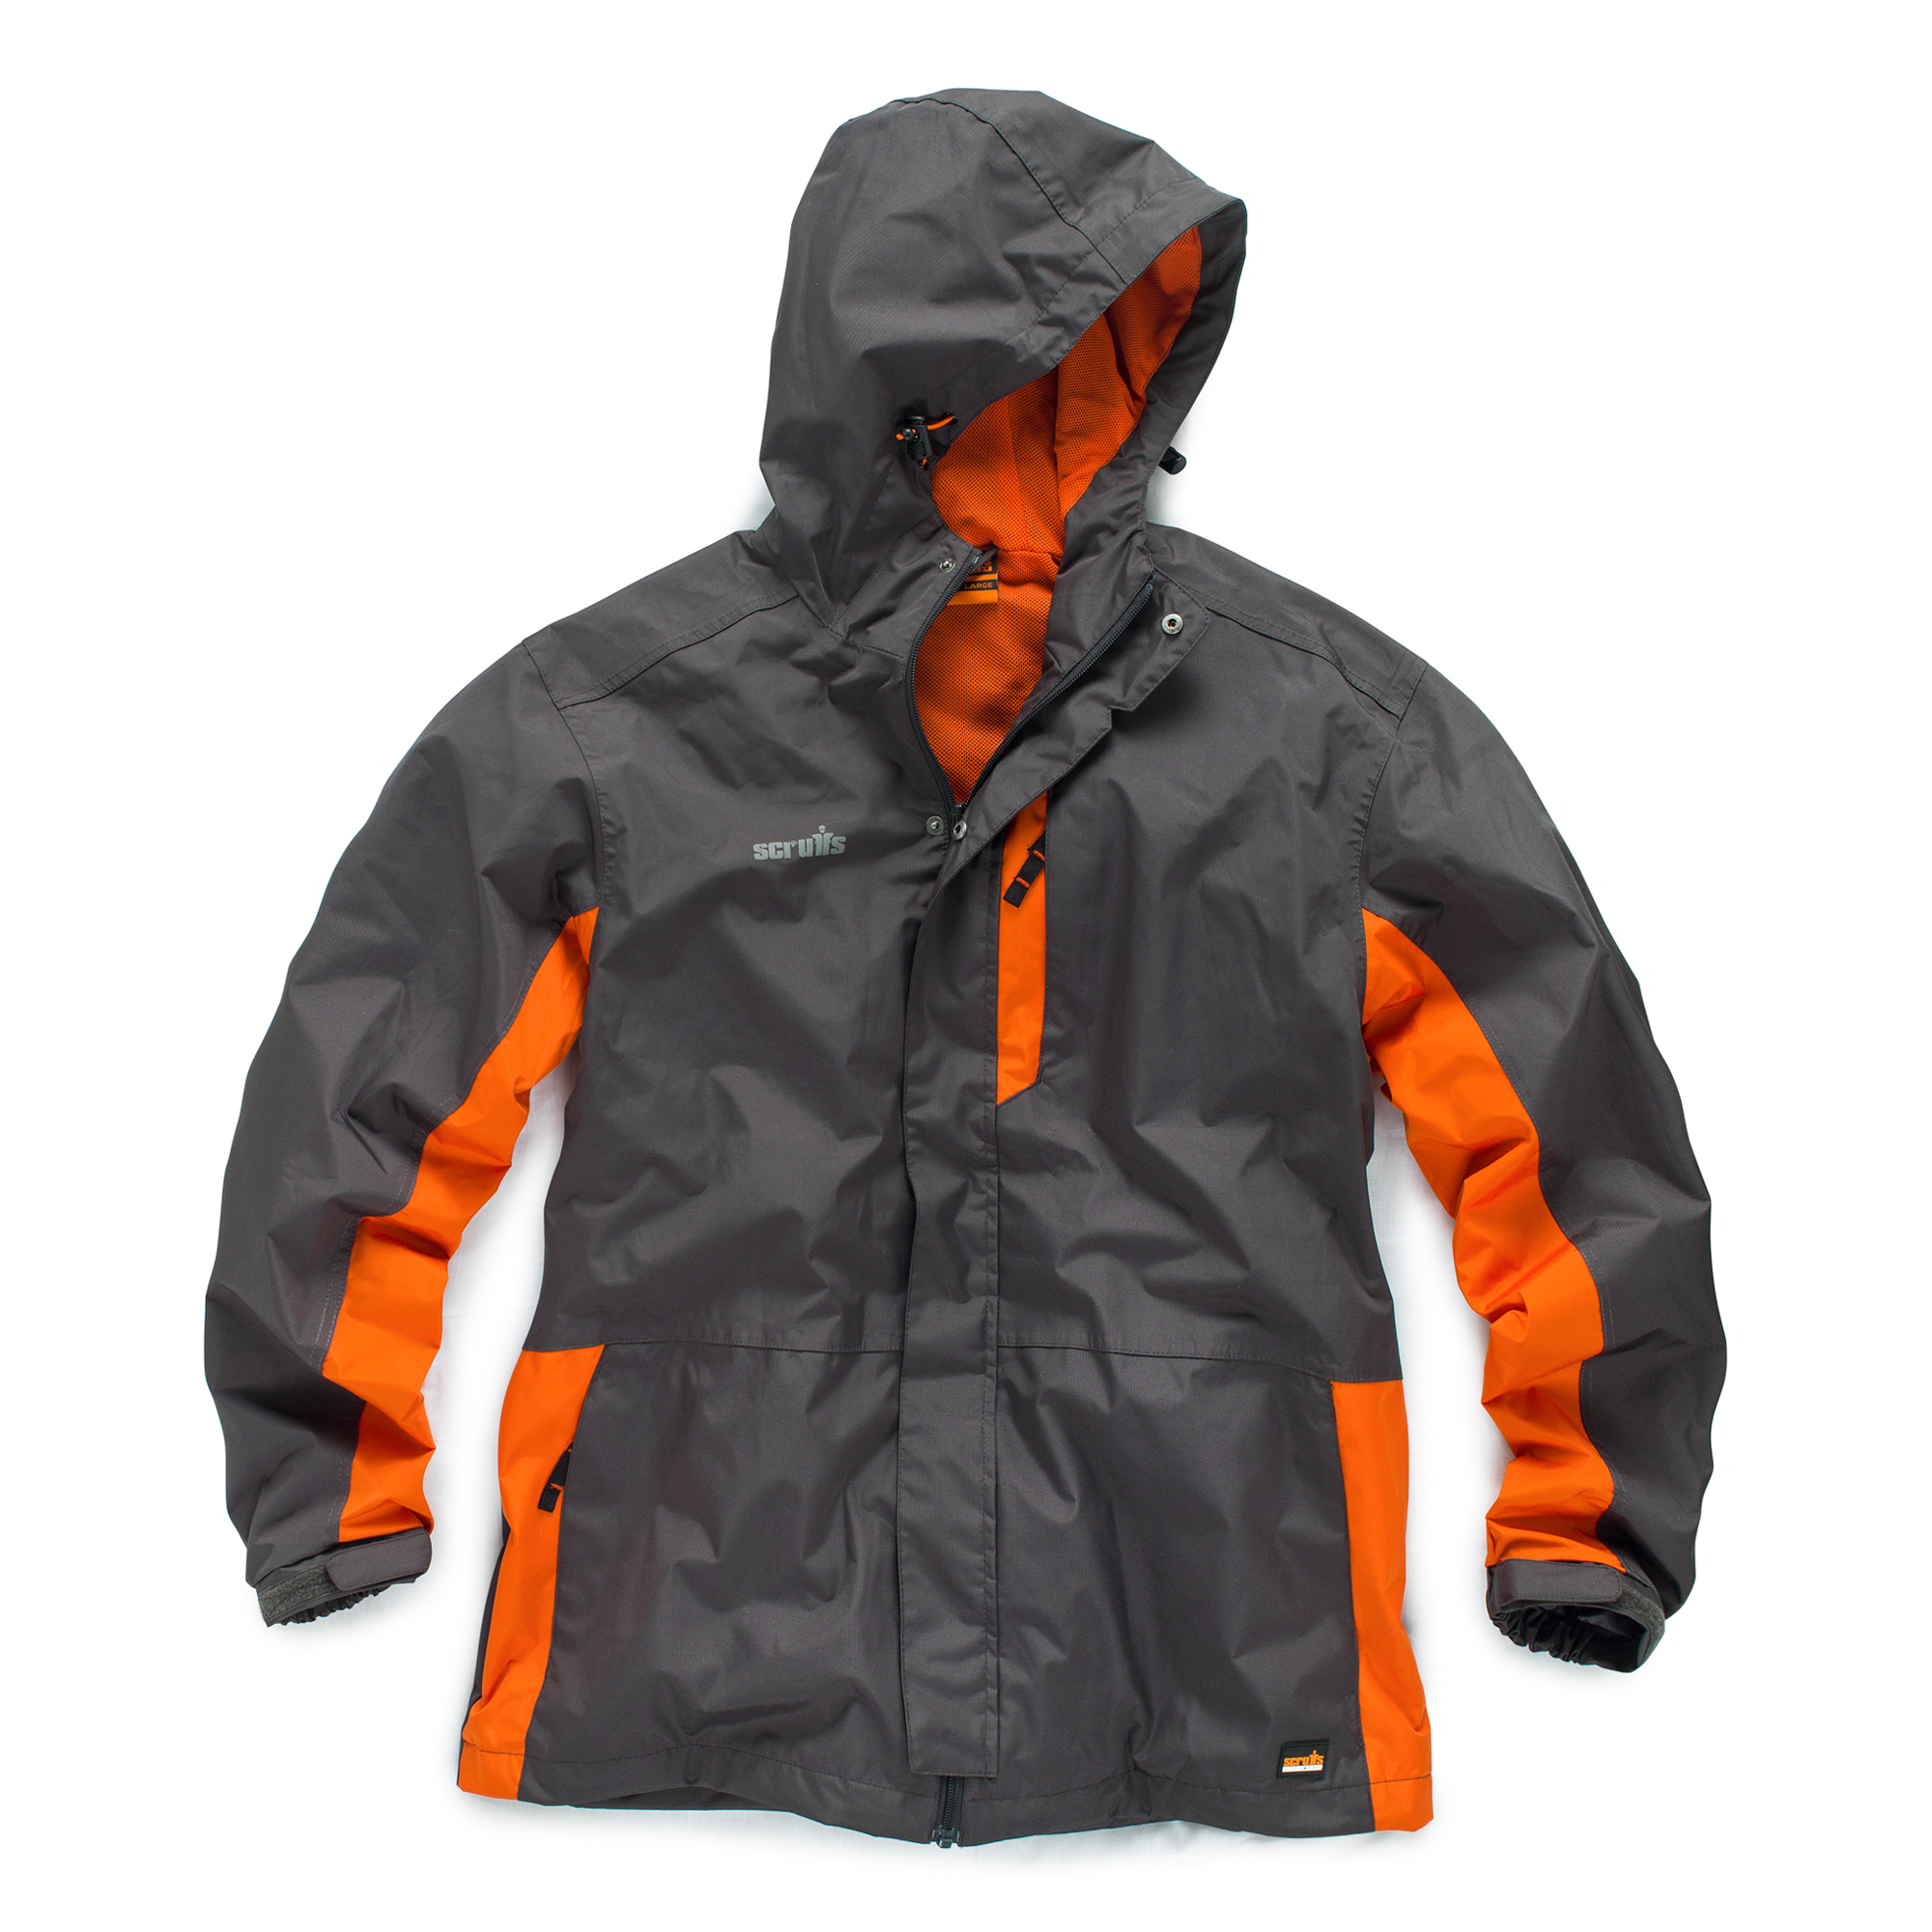 Graphite and orange polyester ripstop worker jacket with Scruffs branding, a hood, multiple pockets and orange mesh lining